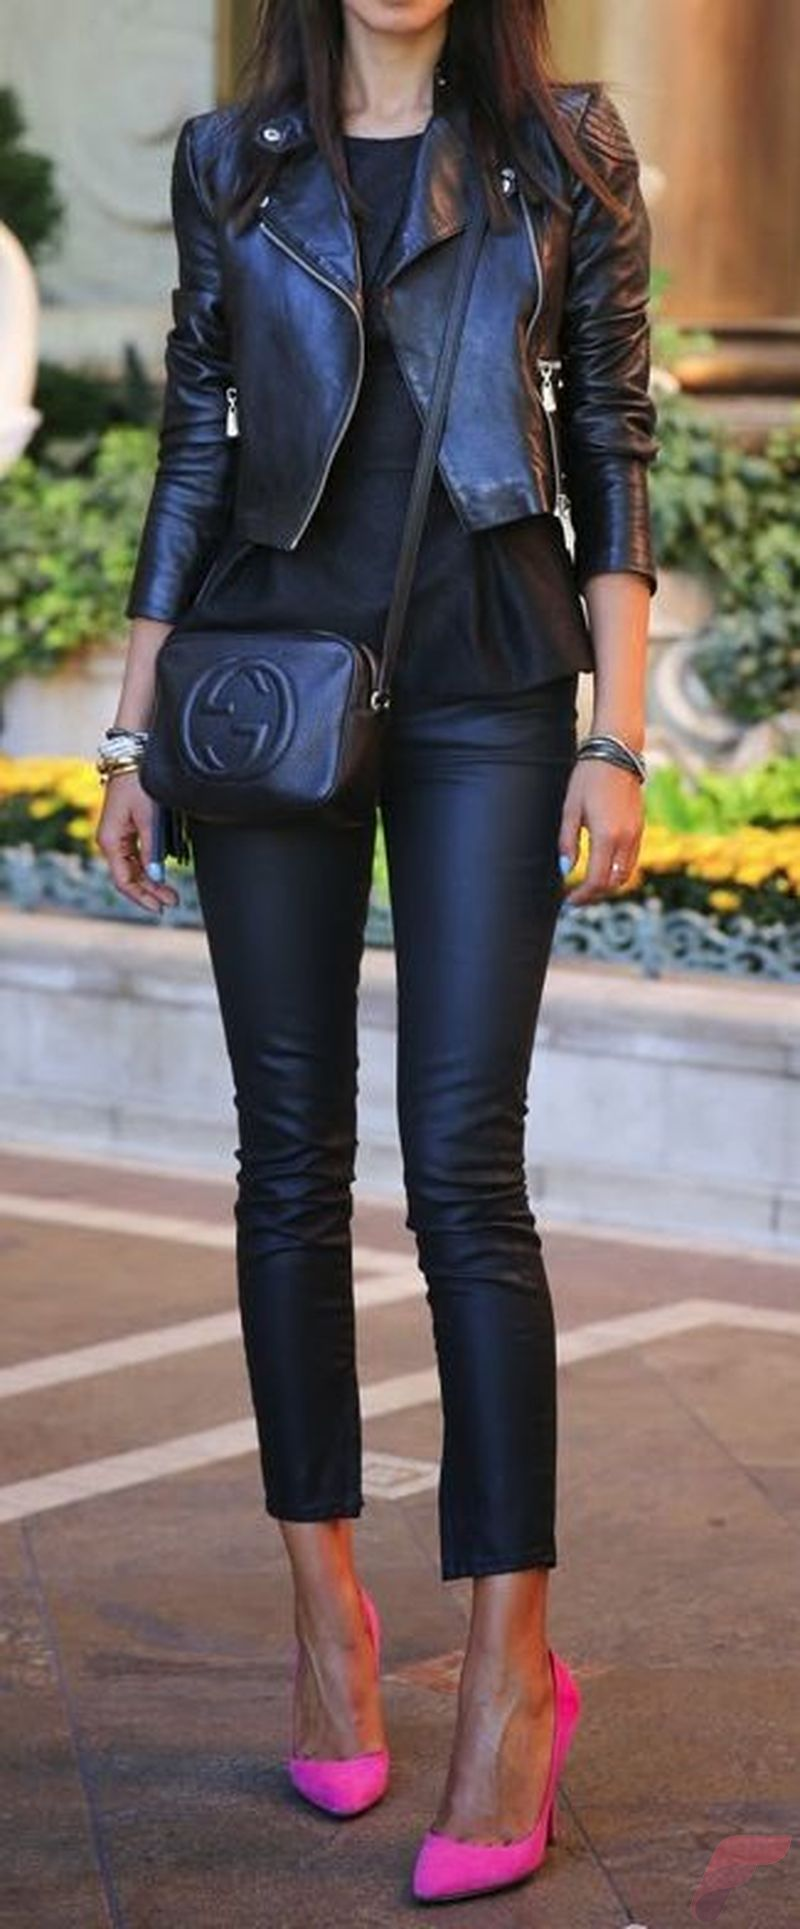 Black leather jacket outfit 15